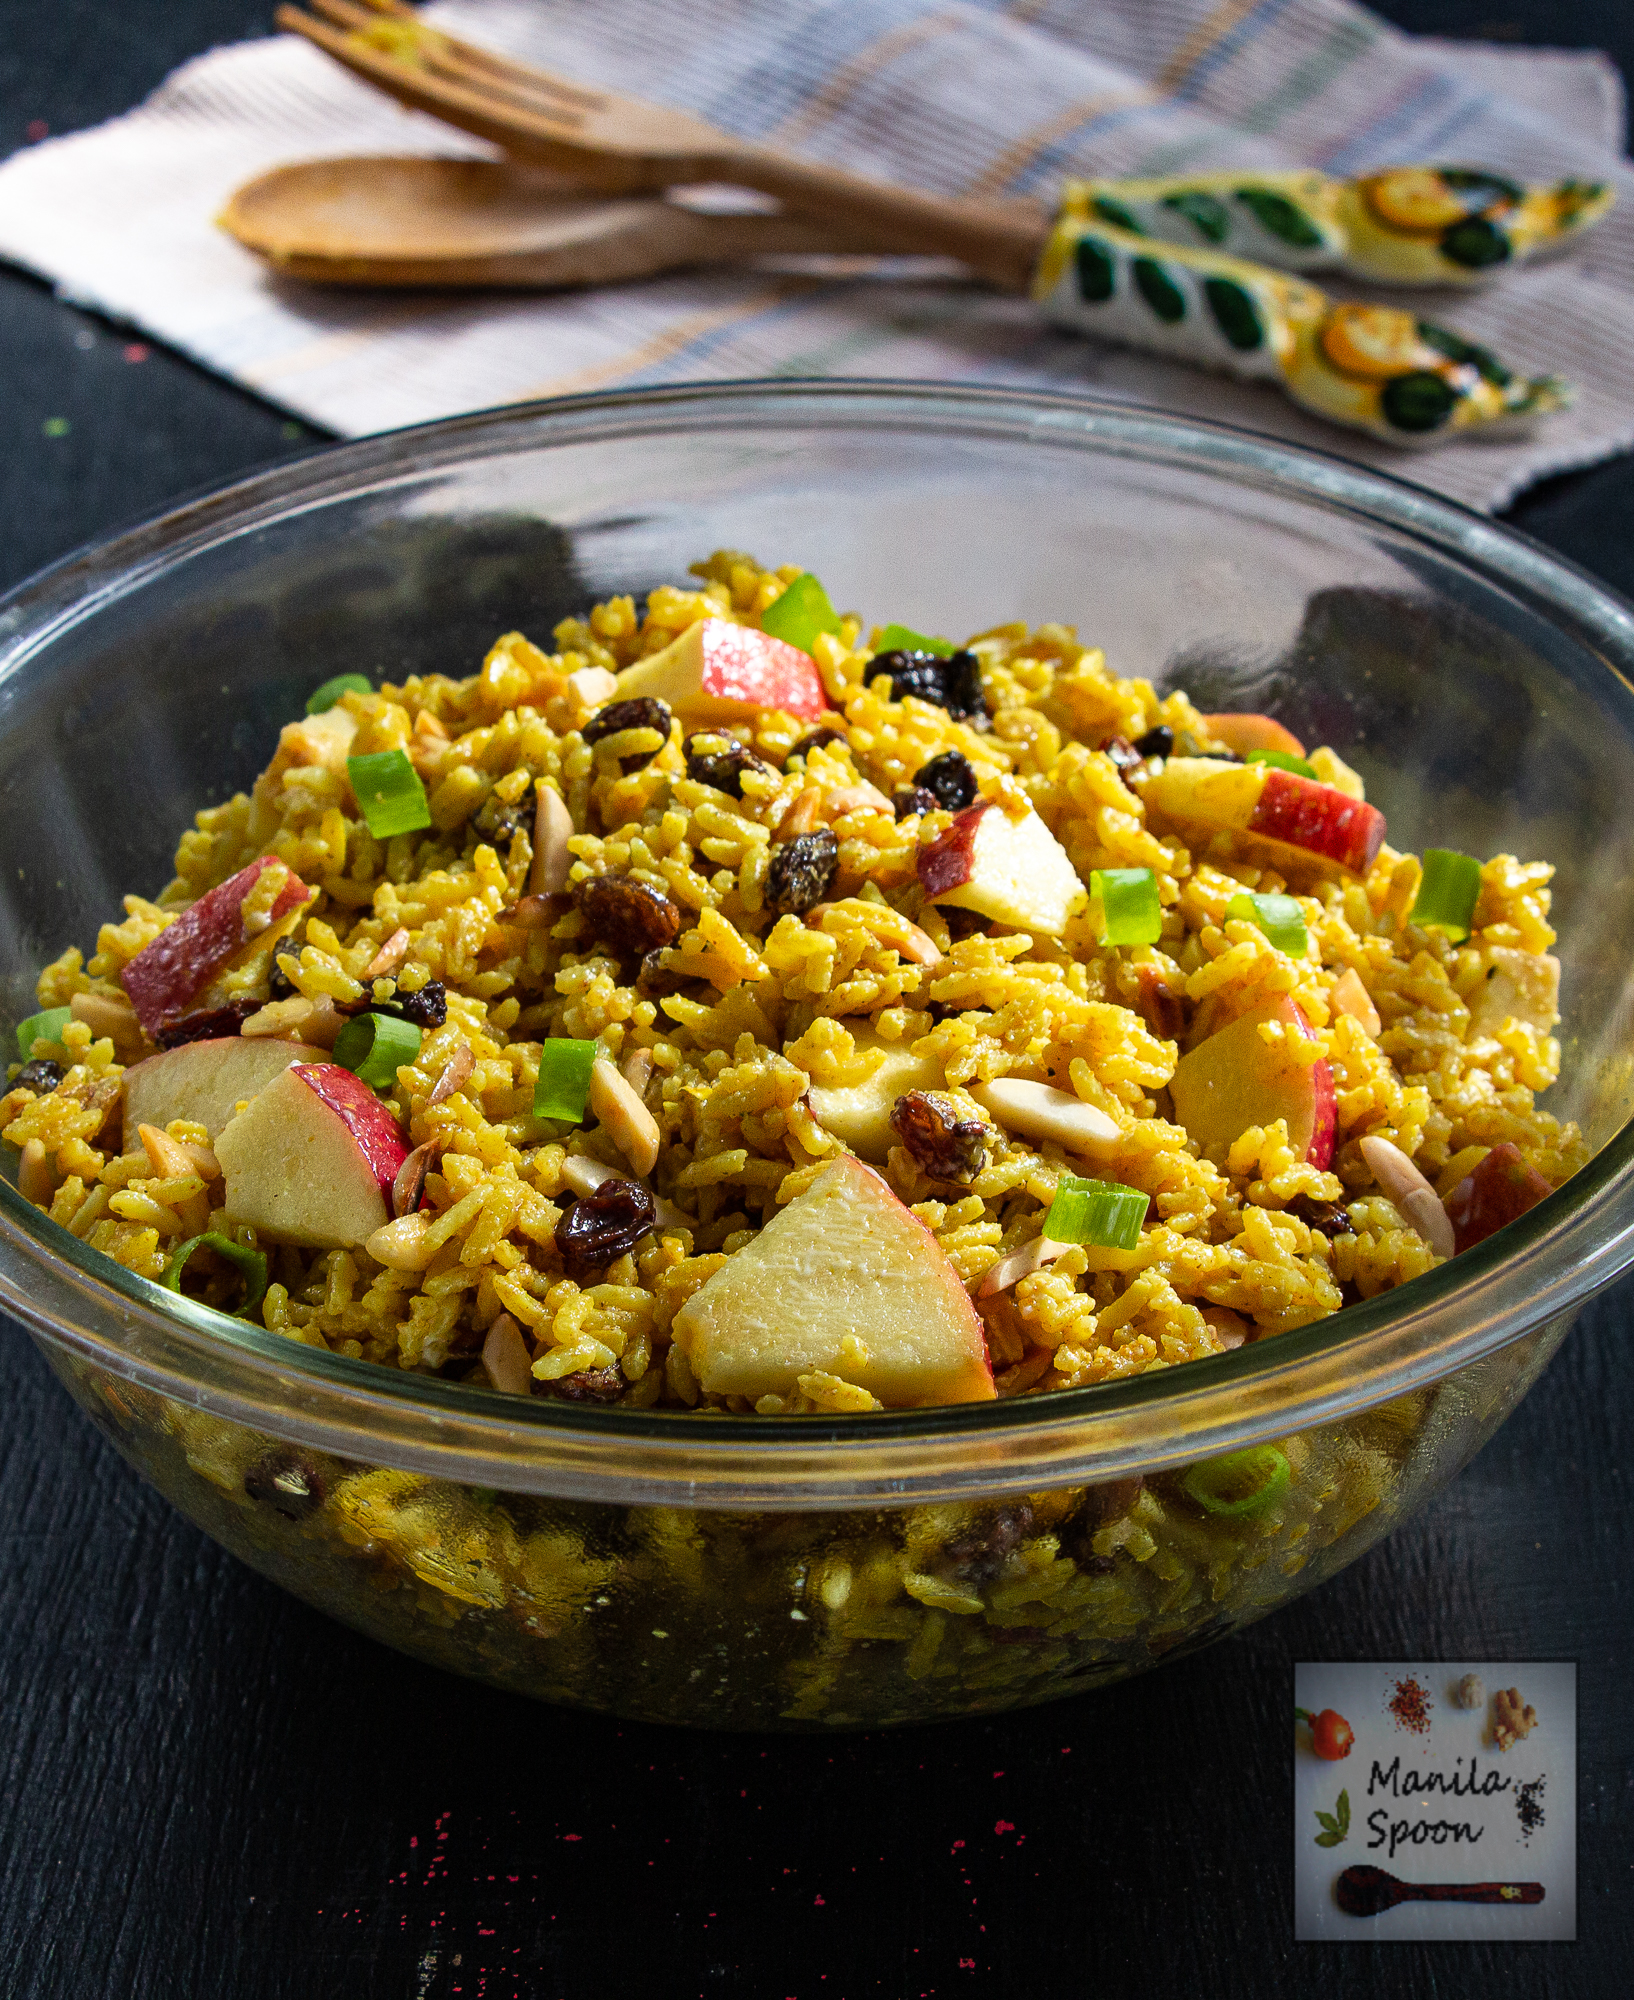 Curried Rice Salad with Apples and Raisins